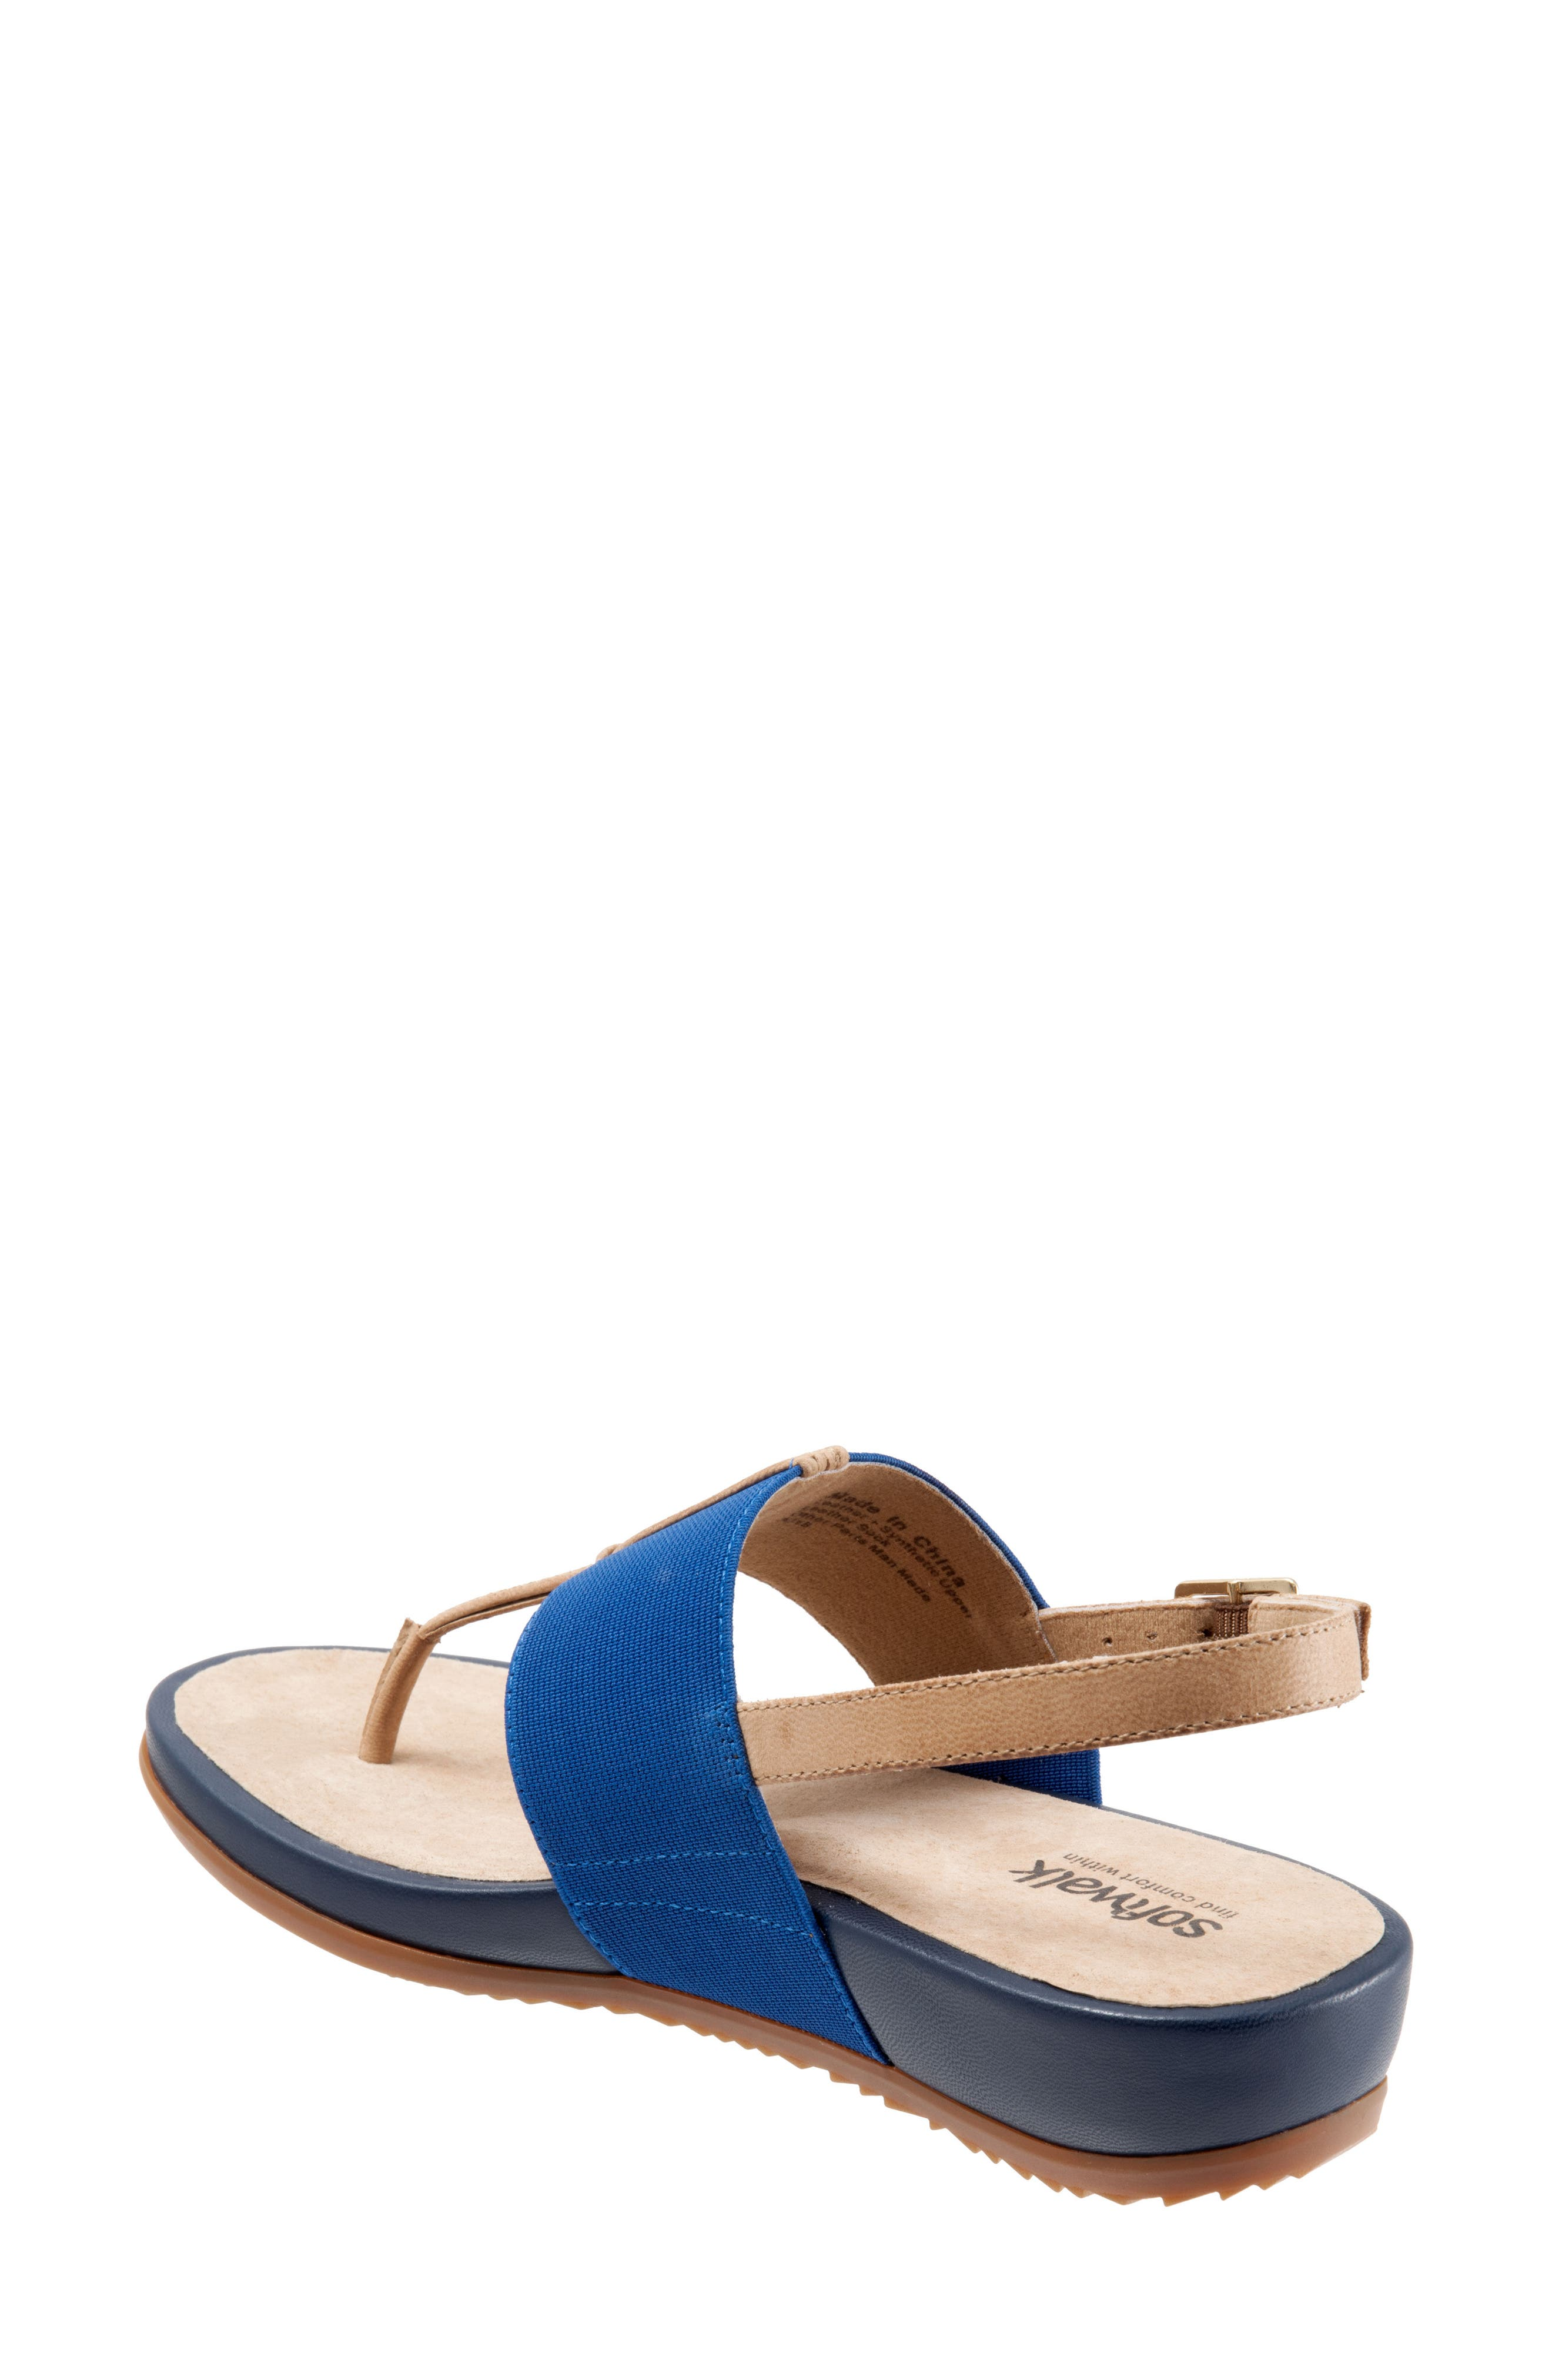 Daytona Sandal,                             Alternate thumbnail 2, color,                             Navy/ Tan Leather